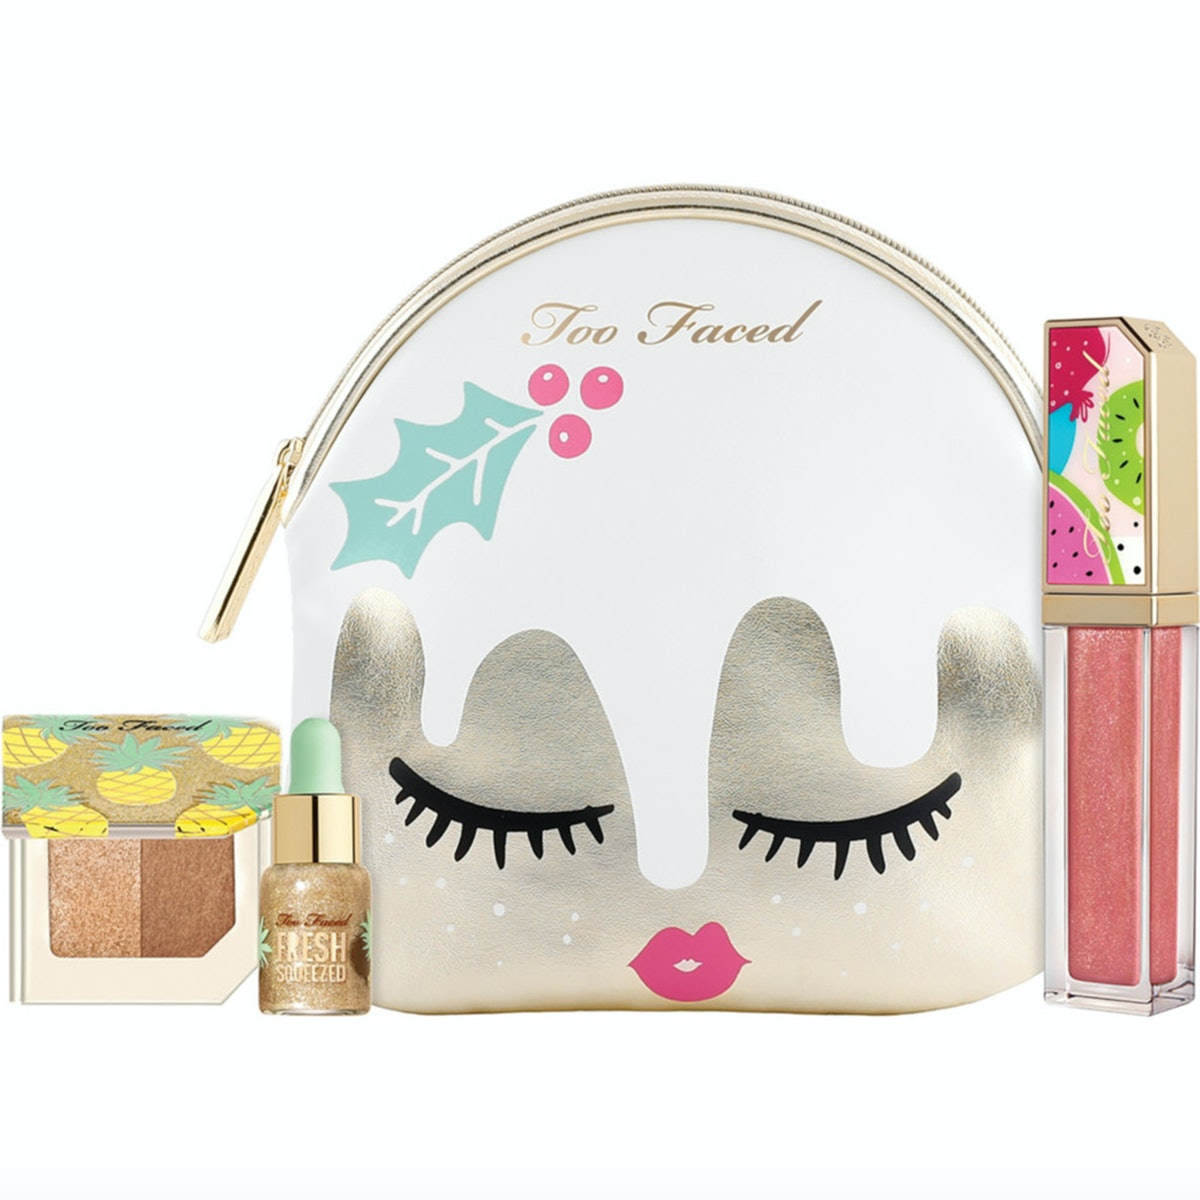 Too Faced Tutti Frutti Christmas Fruit Cake Makeup Collection